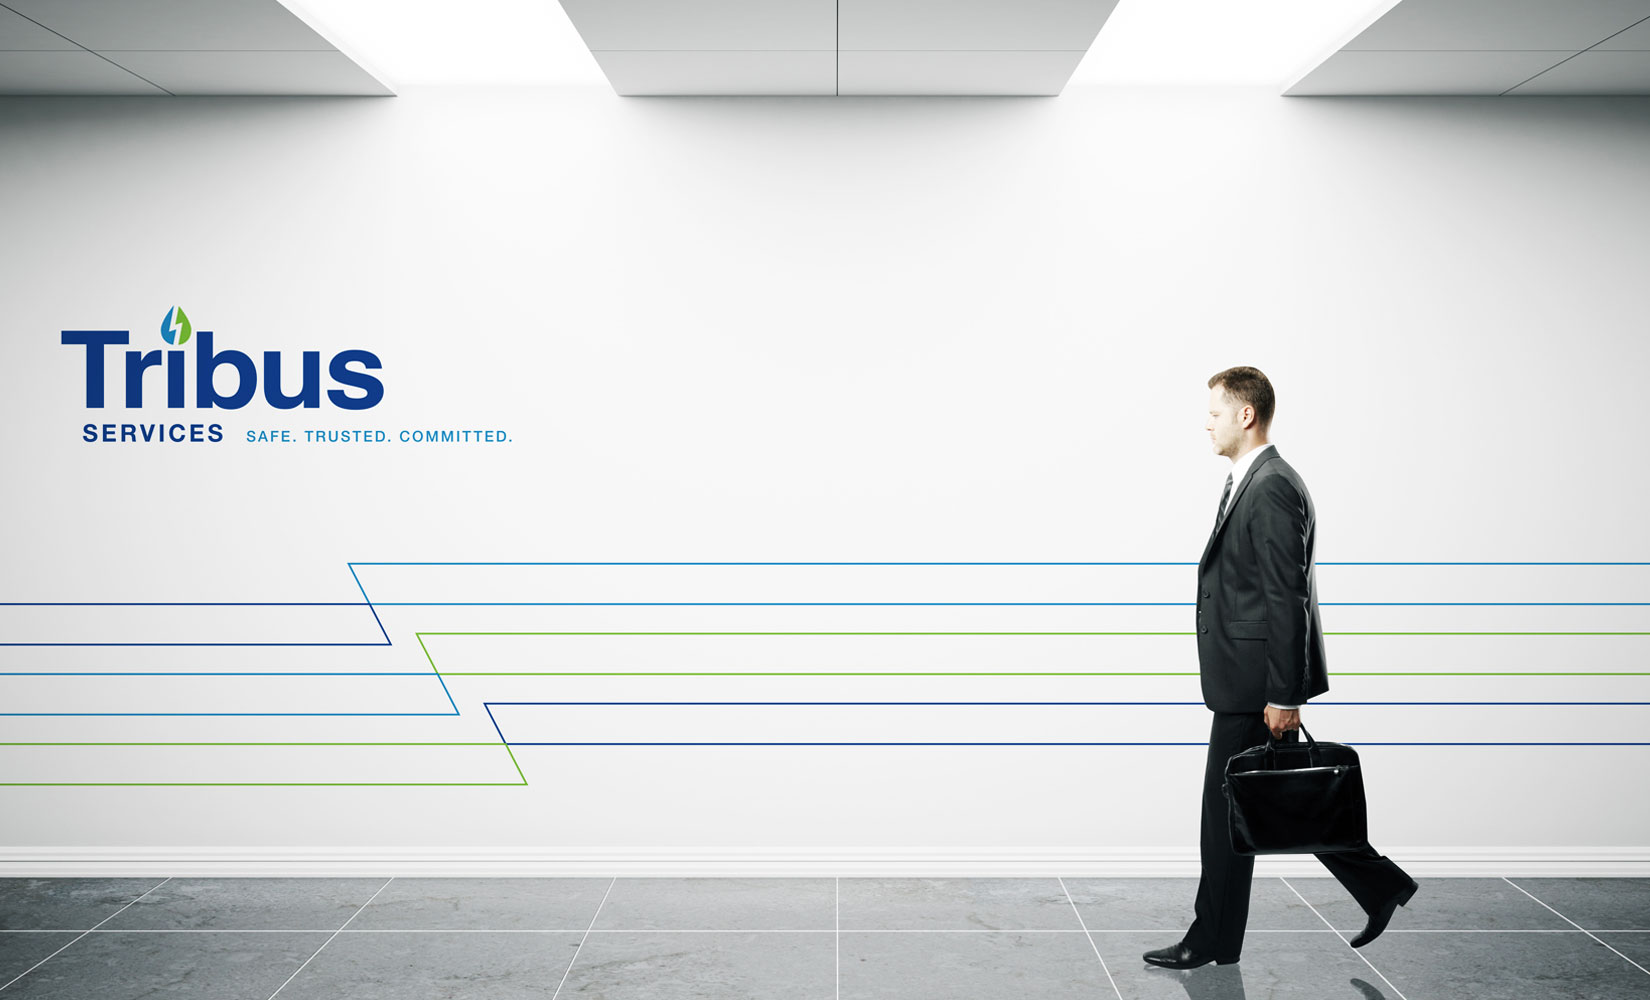 Tribus Branded Environment - Wall graphic